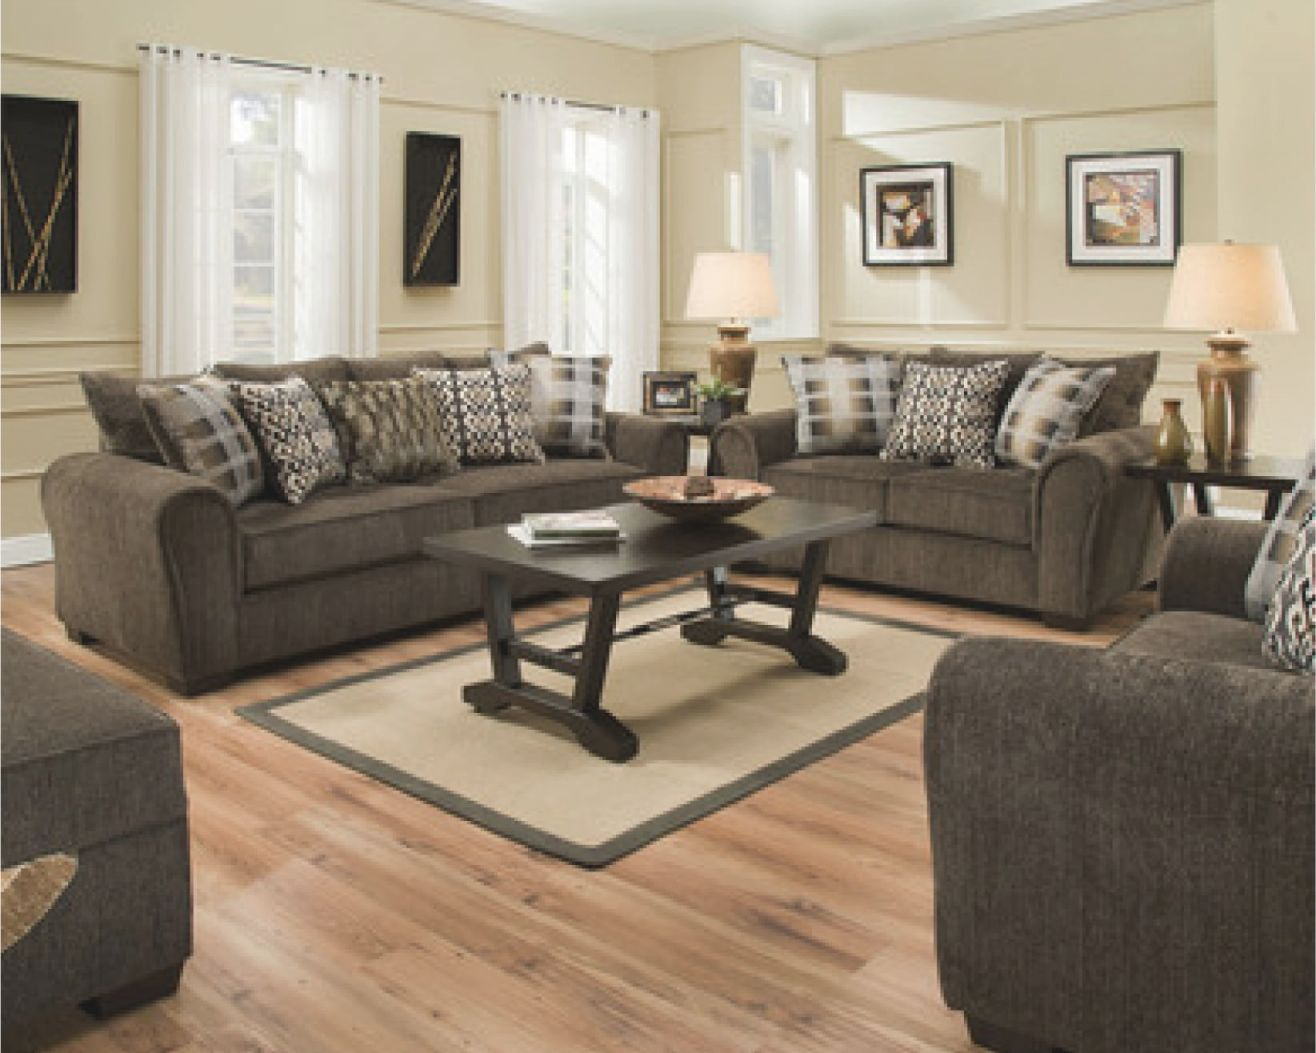 Simmons | Davis Home Furniture - Asheville, Canton with regard to New Simmons Living Room Furniture